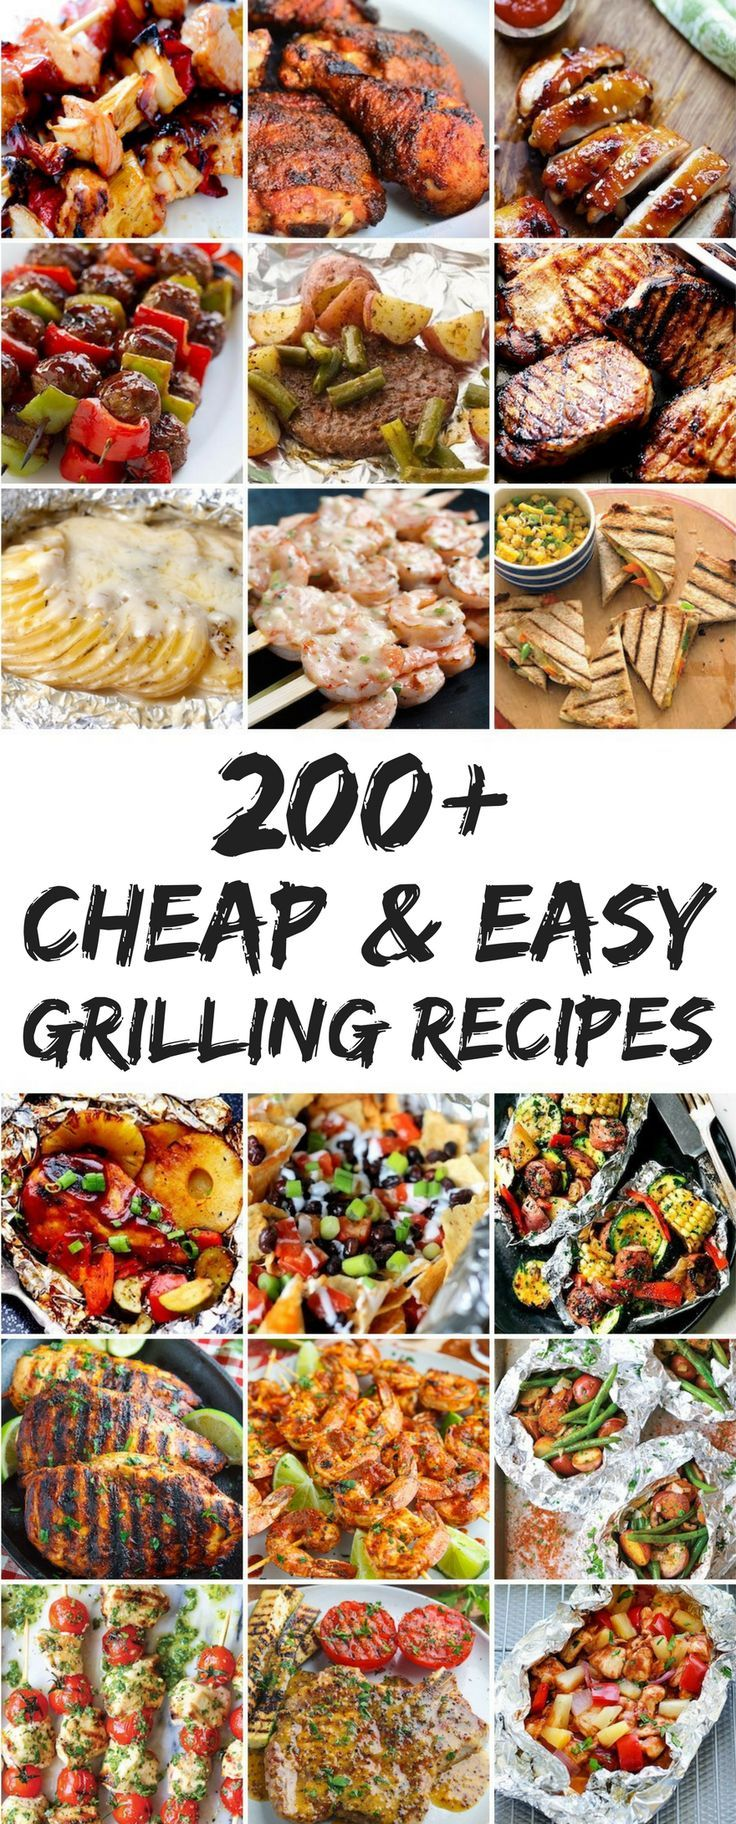 200 Cheap And Easy Grilling Recipes Easy Grilling Recipes Easy Grilling Grilling Recipes